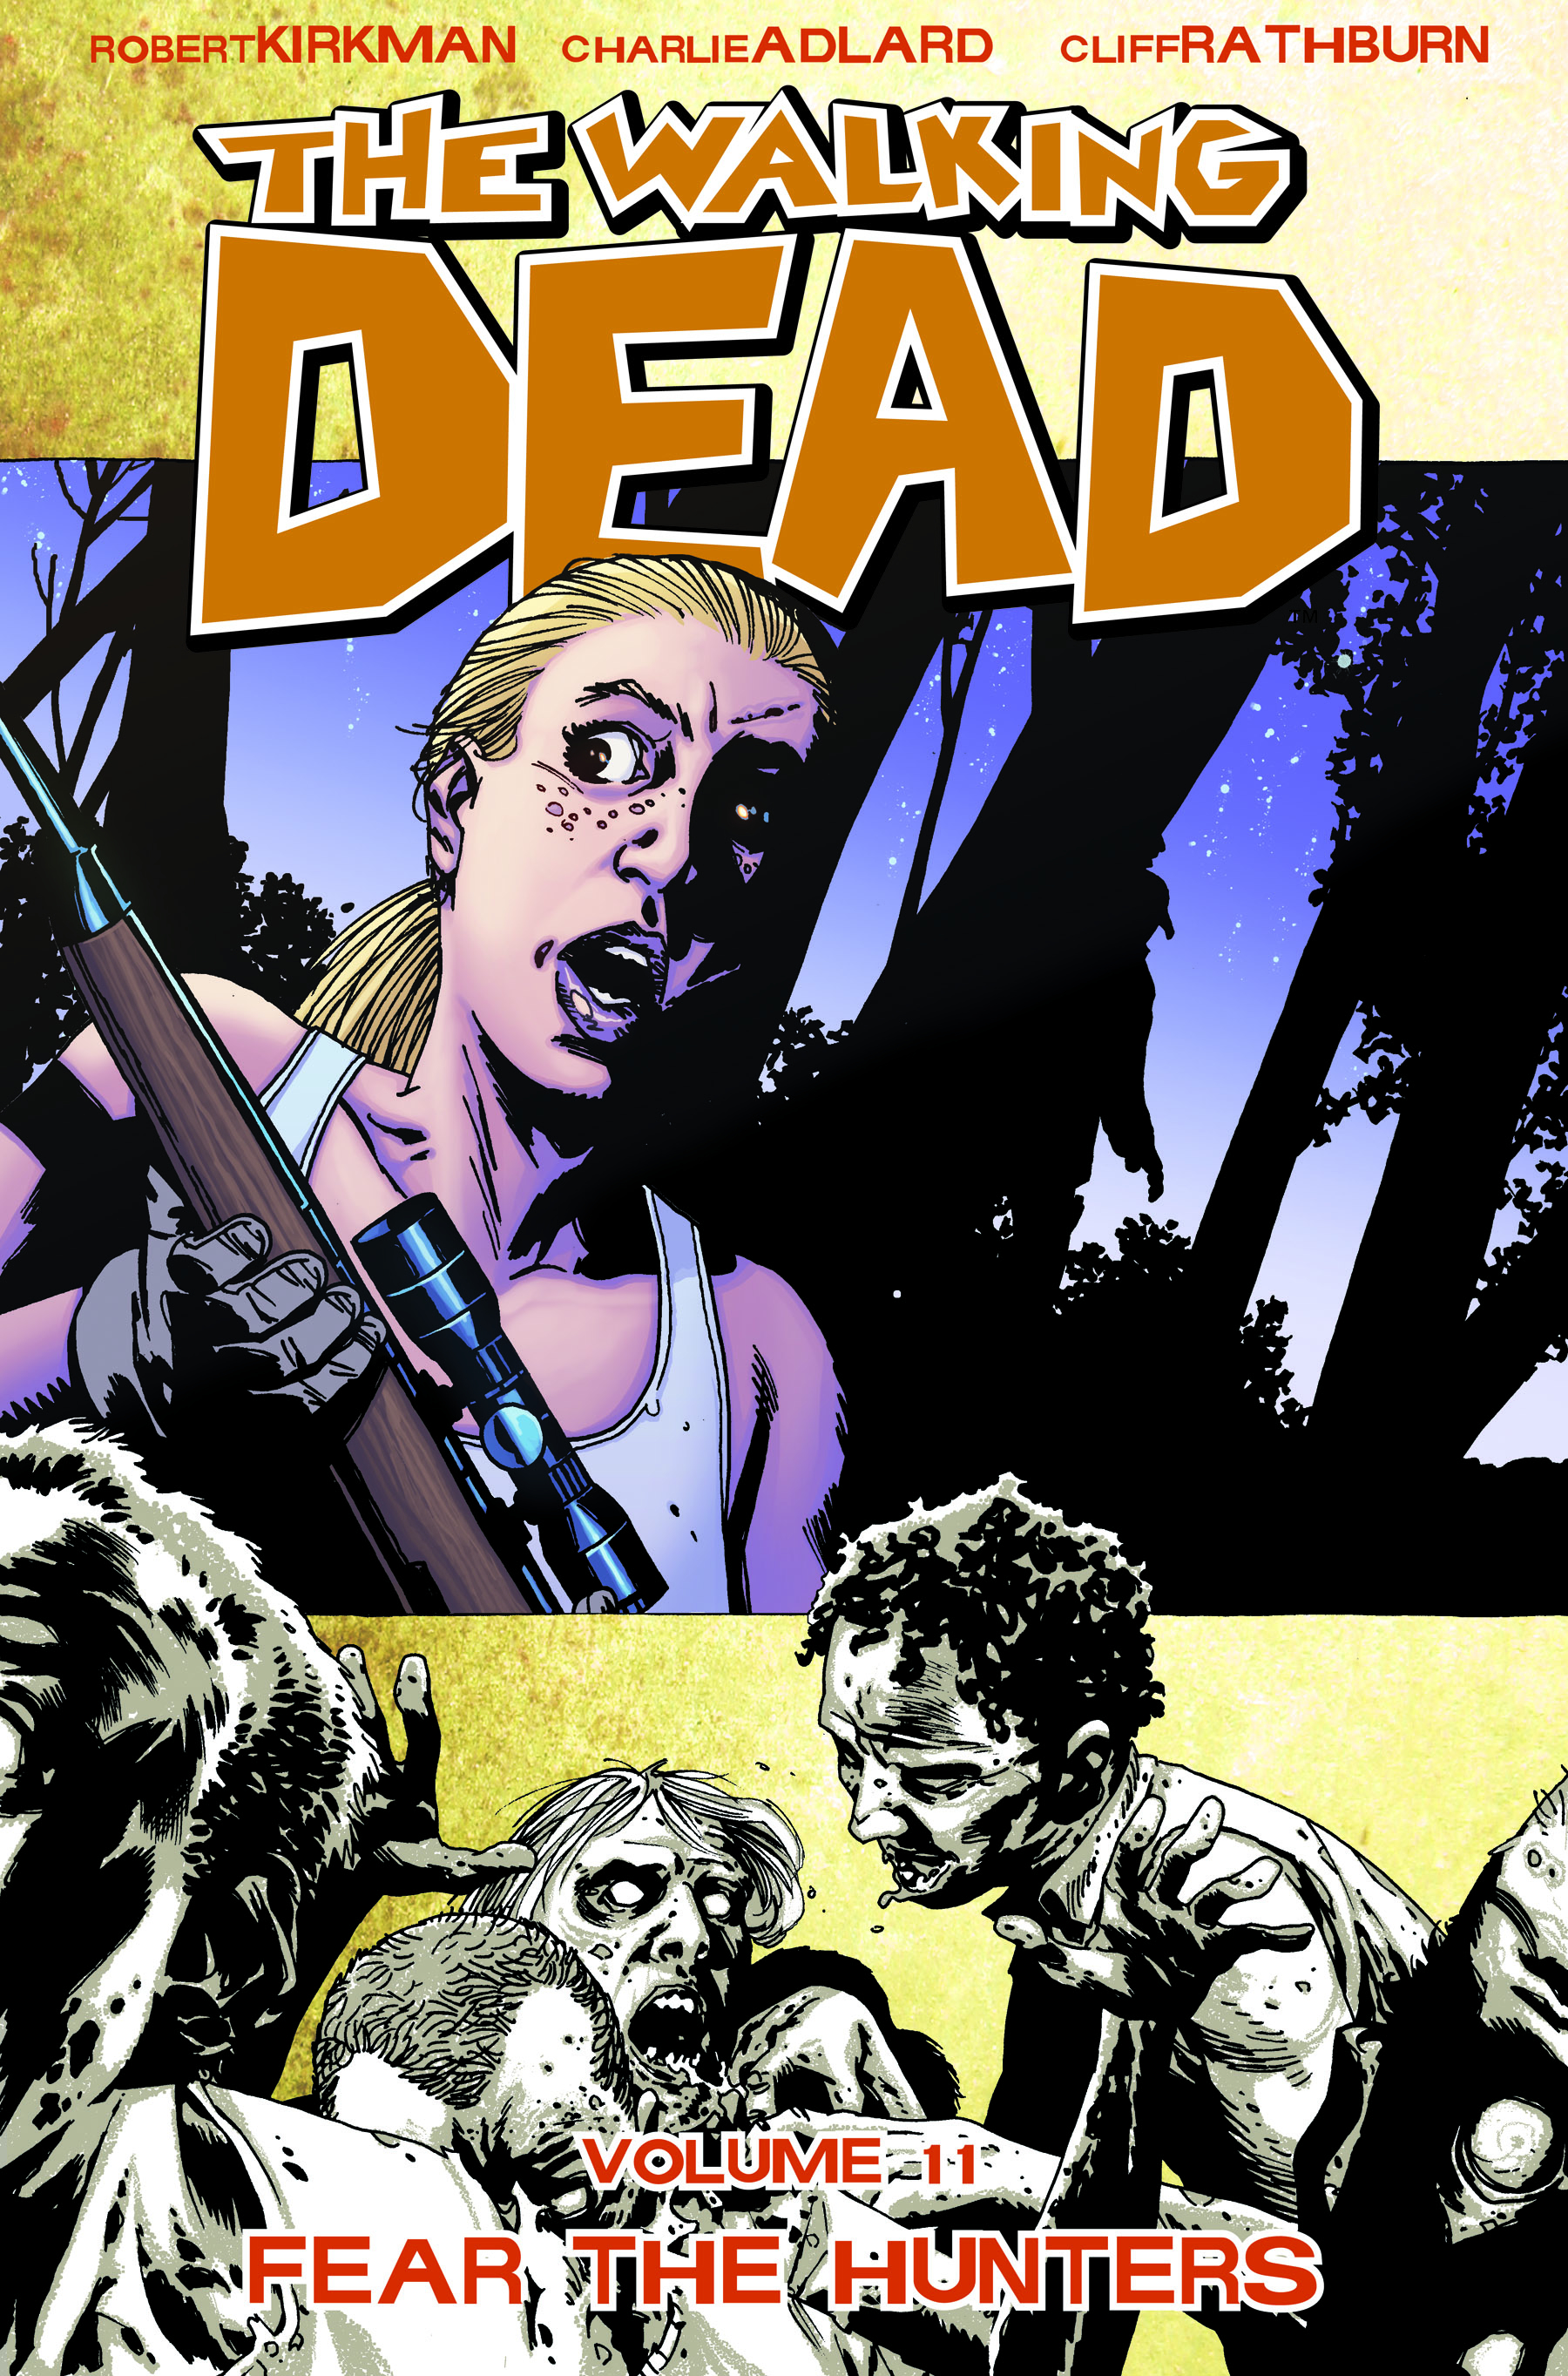 WALKING DEAD TP VOL 11 FEAR THE HUNTERS (OCT090390) (MR)